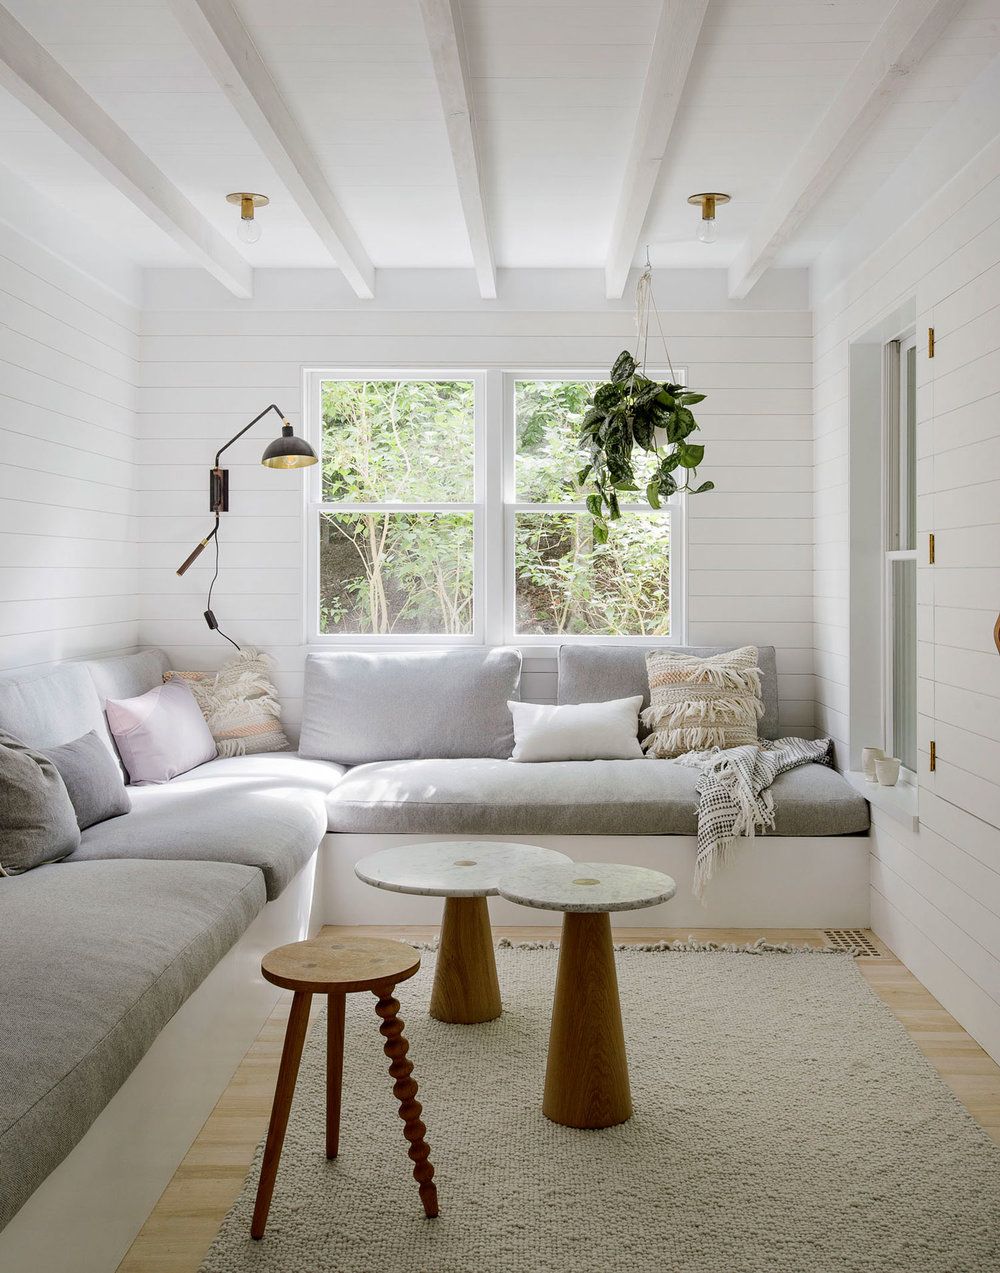 Amagansett-House-by-Jessica-Helgerson-Interior-Design-Yellowtrace-01.jpg